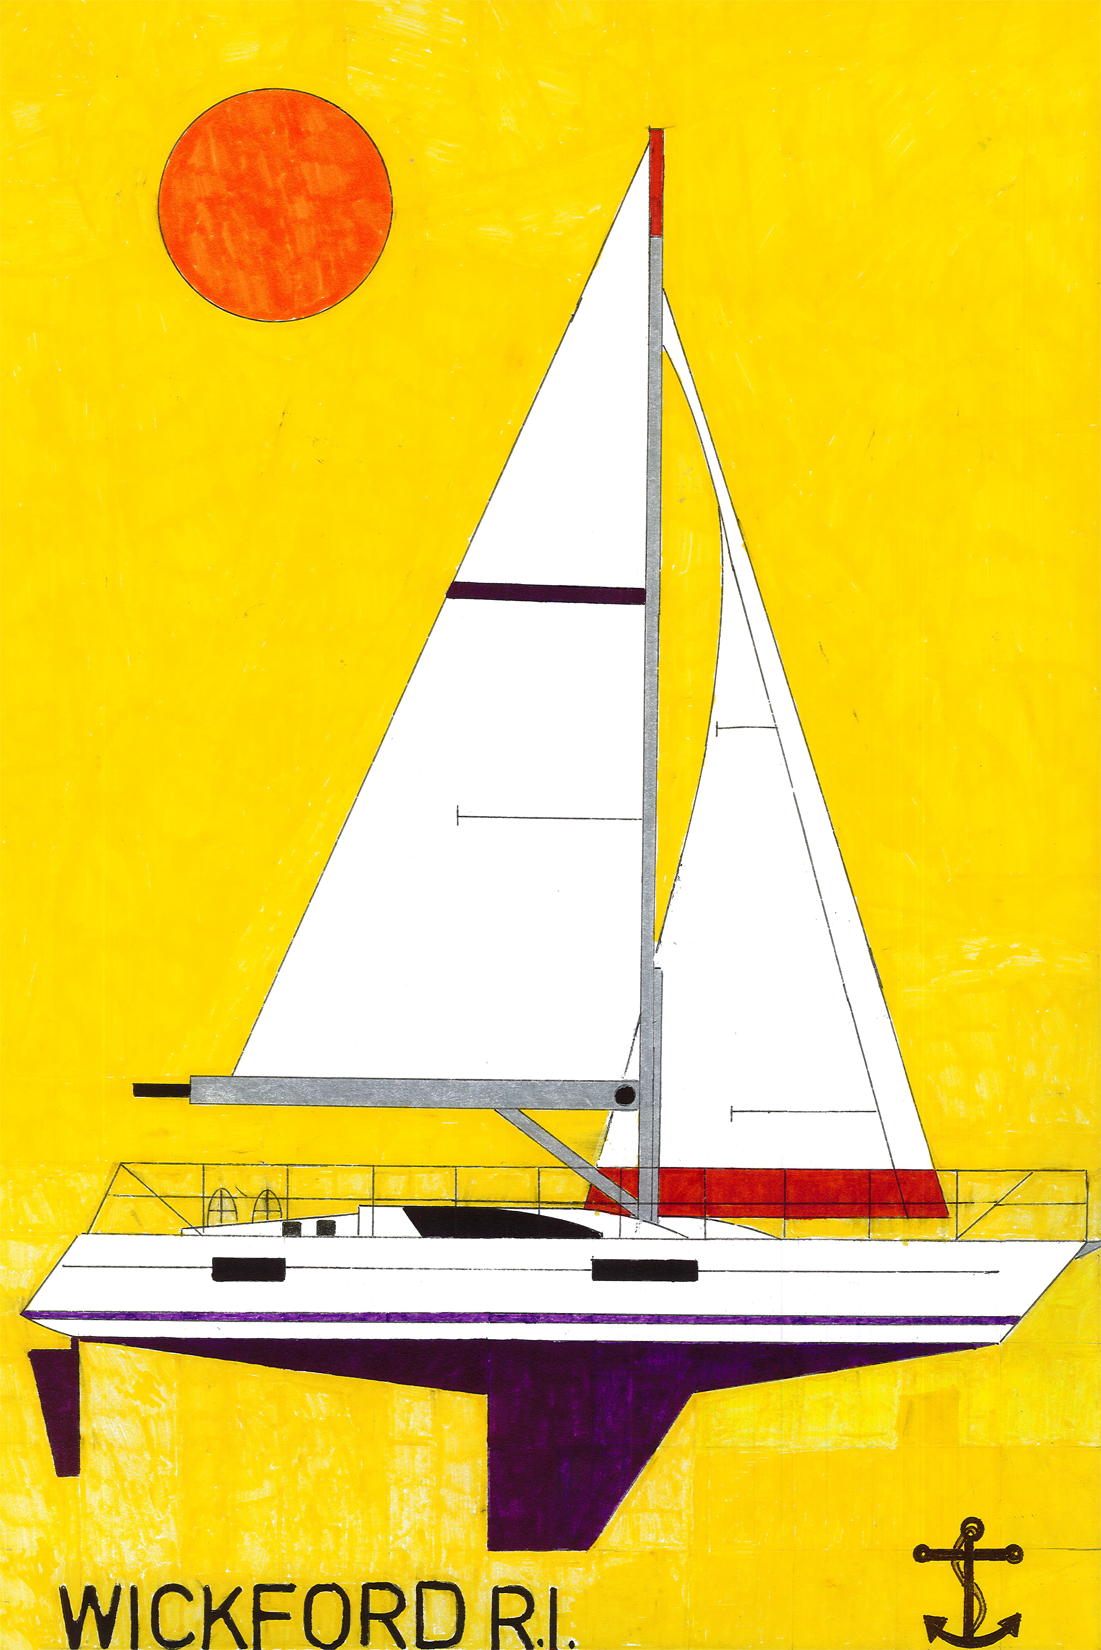 ralph-wickford-sailboat.png